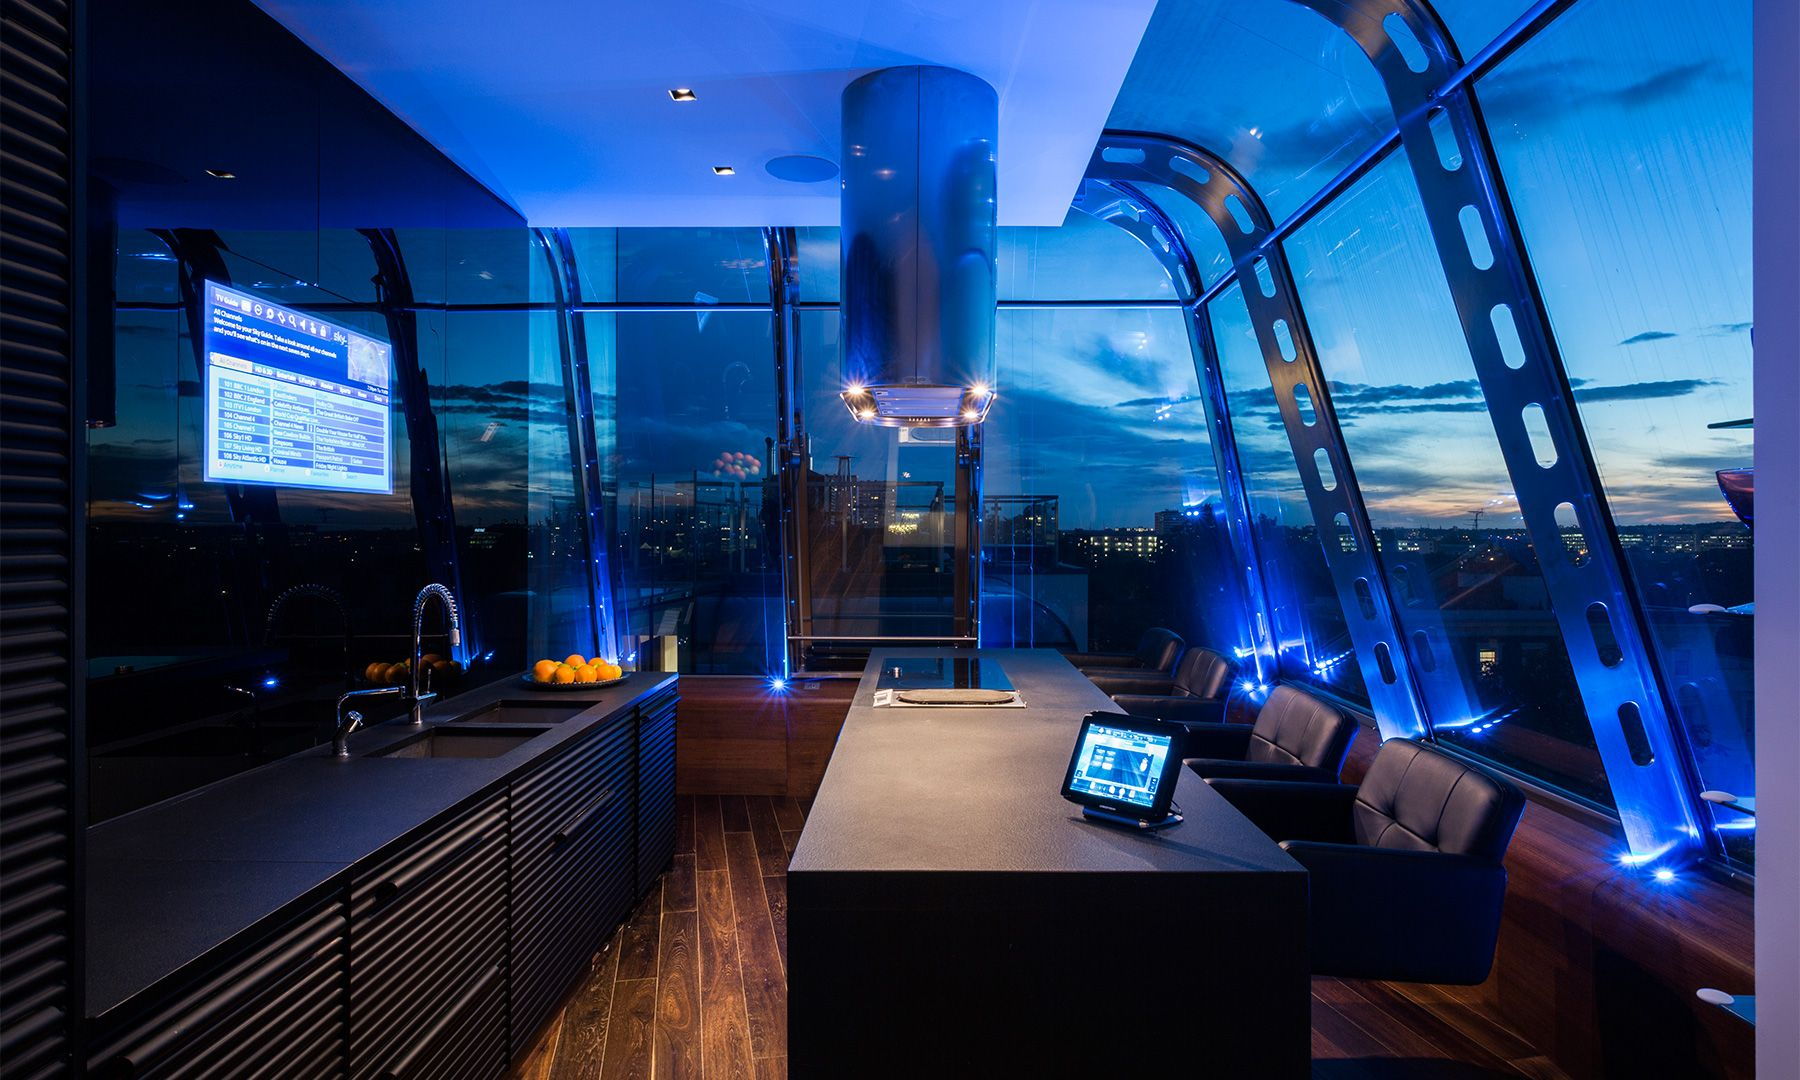 High Tech Homes And Smart Home Technology Dujour Smart Home Technology Design Tech Homes Home Technology